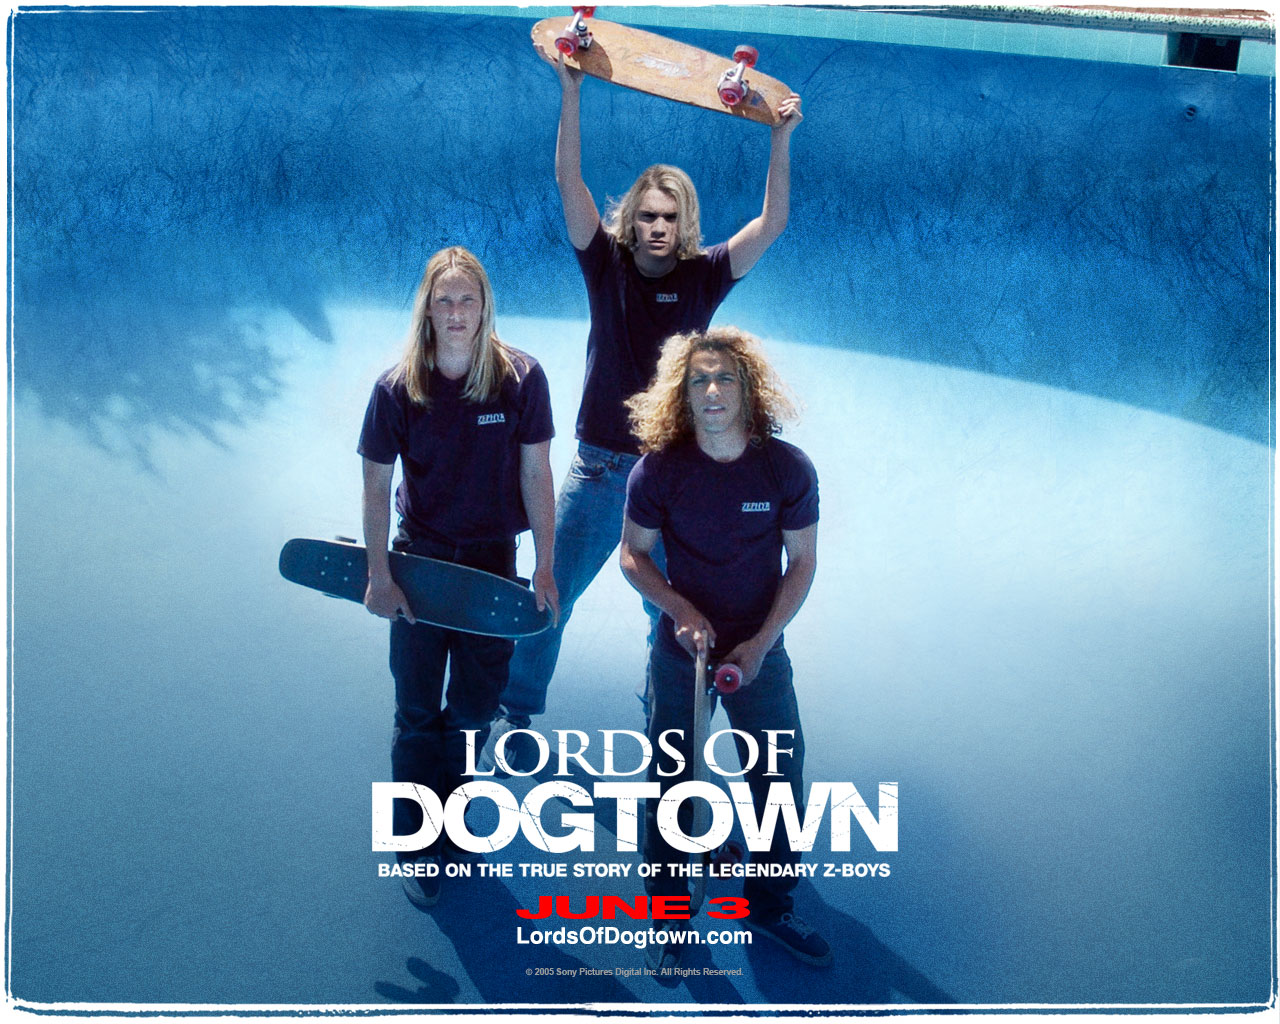 http://3.bp.blogspot.com/-QqSNspr-OPc/T54L02KFo2I/AAAAAAAAA0Y/ogQupeQB7fA/s1600/Heath_Ledger_in_Lords_of_Dogtown_Wallpaper_5_1280.jpg